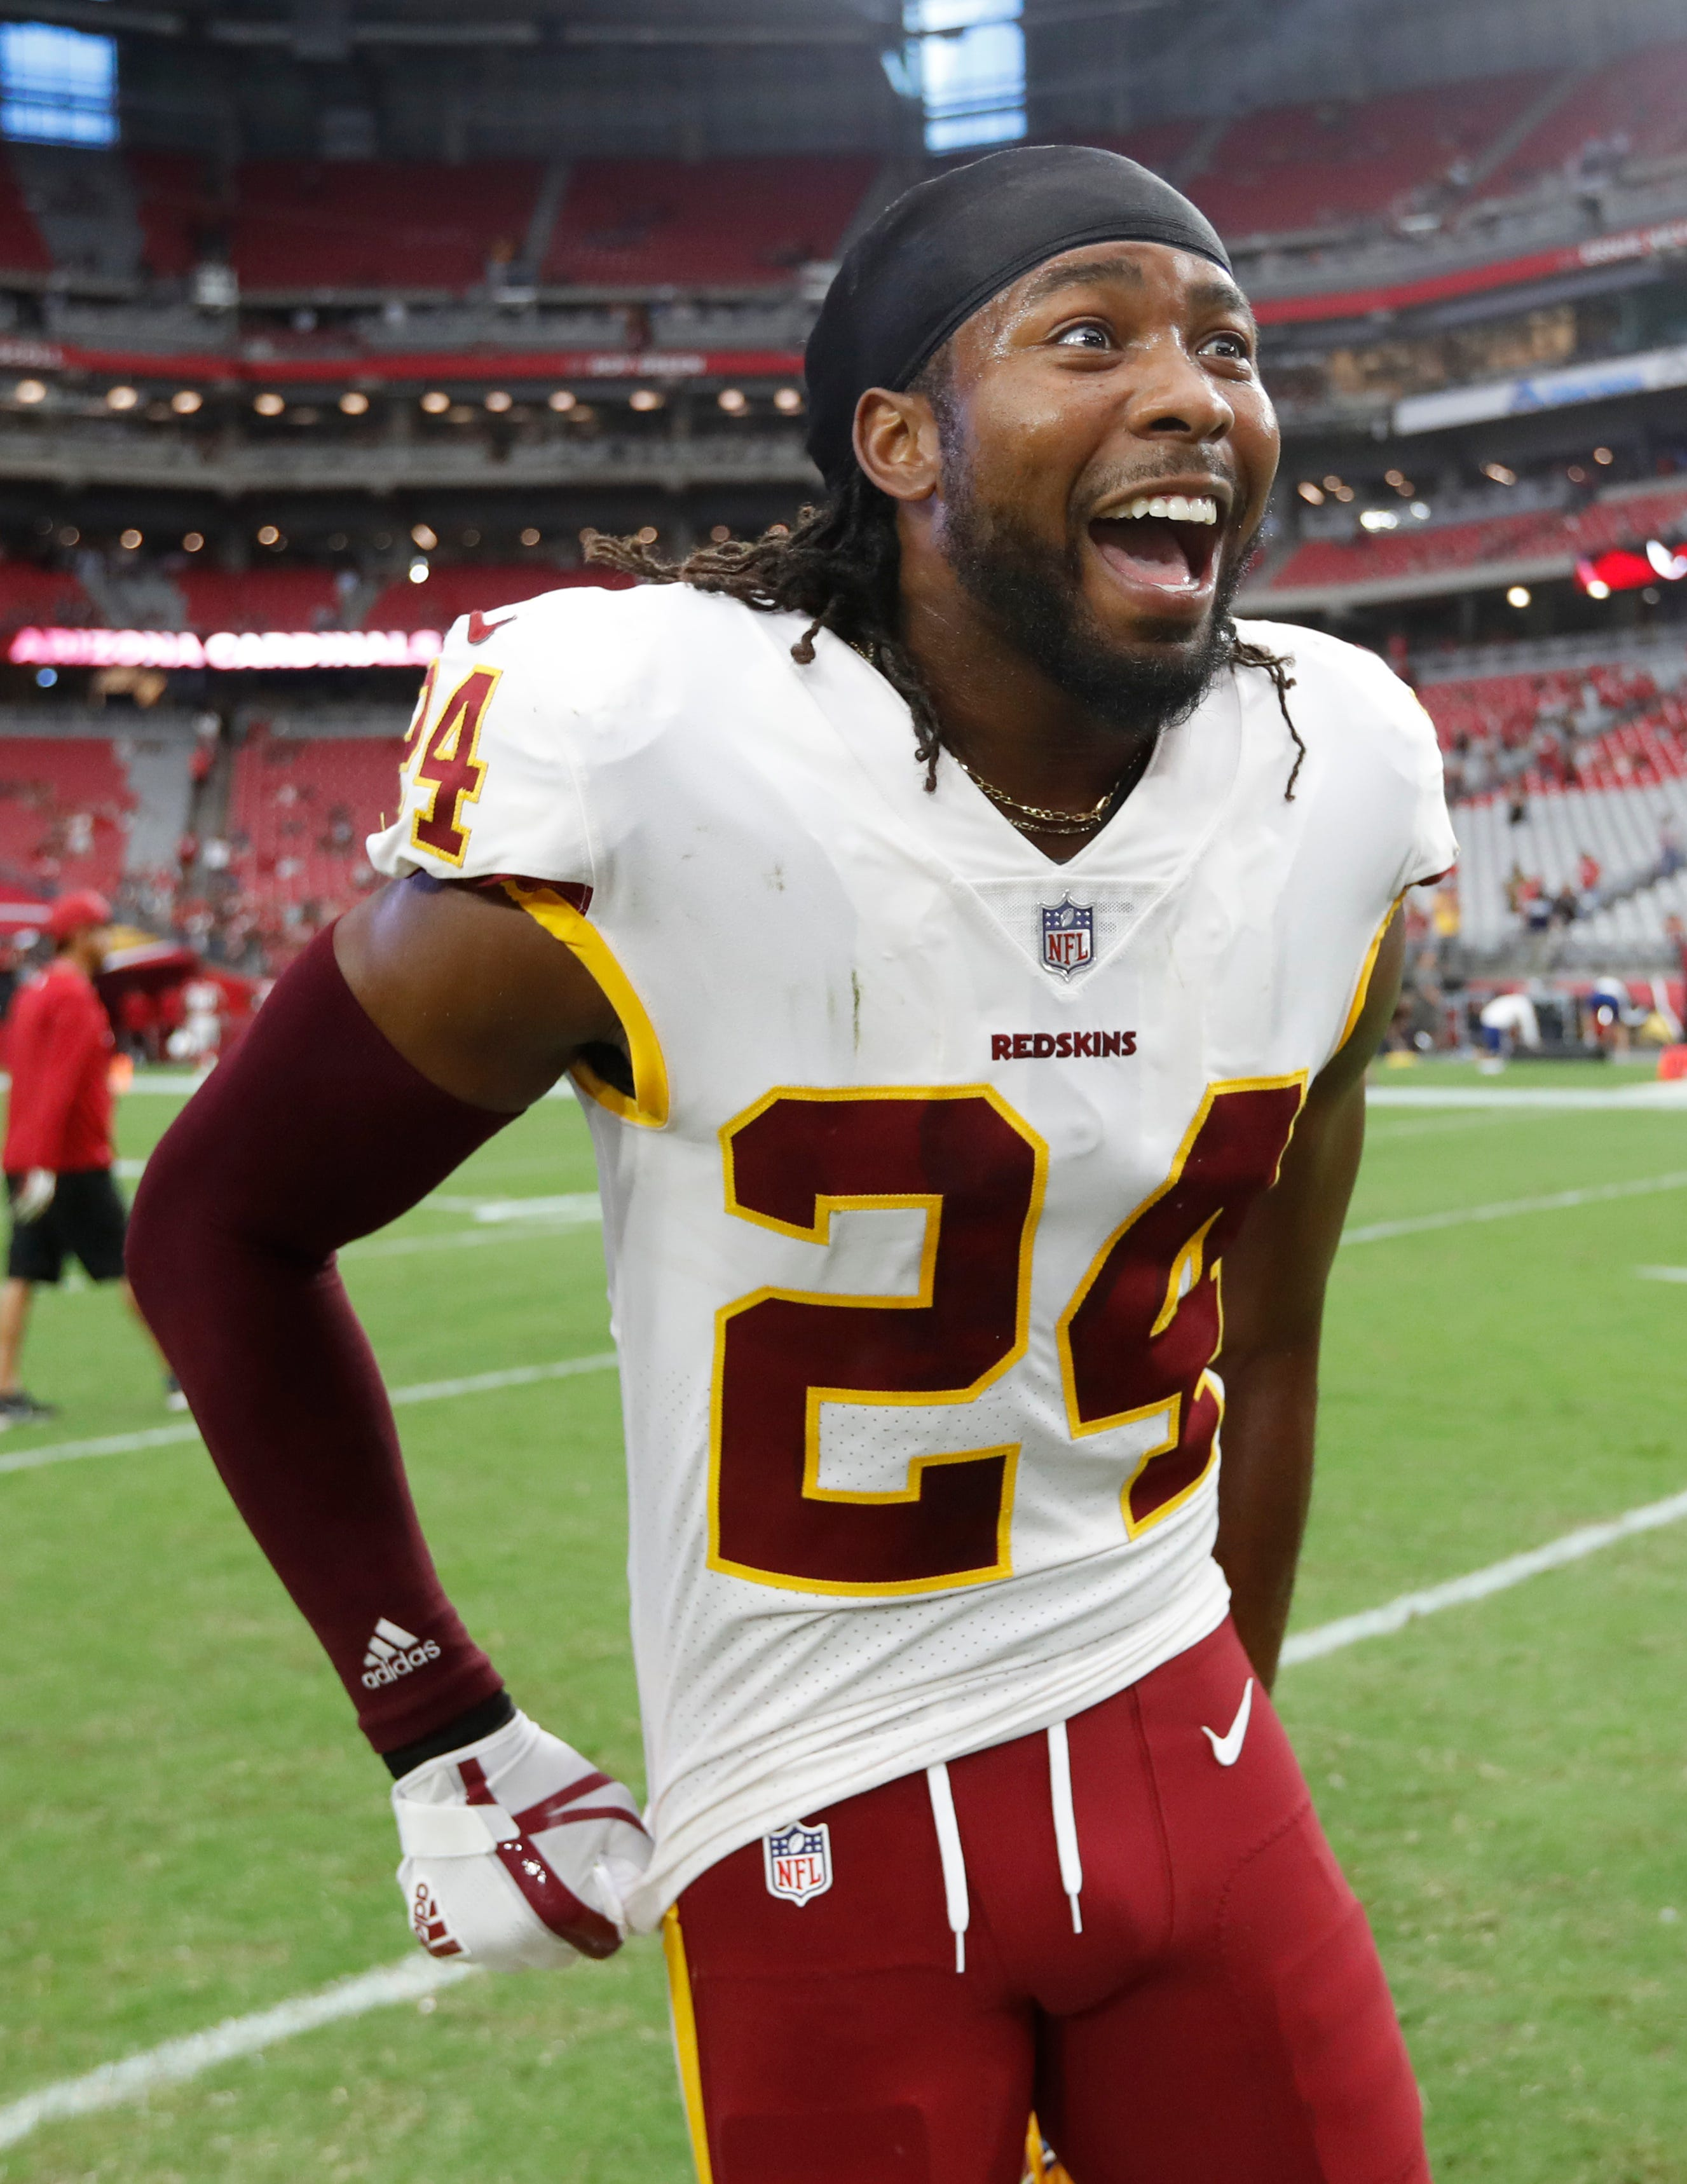 Ex-Redskins teammate: Josh Norman is 'in love with being a celebrity,' not playing football